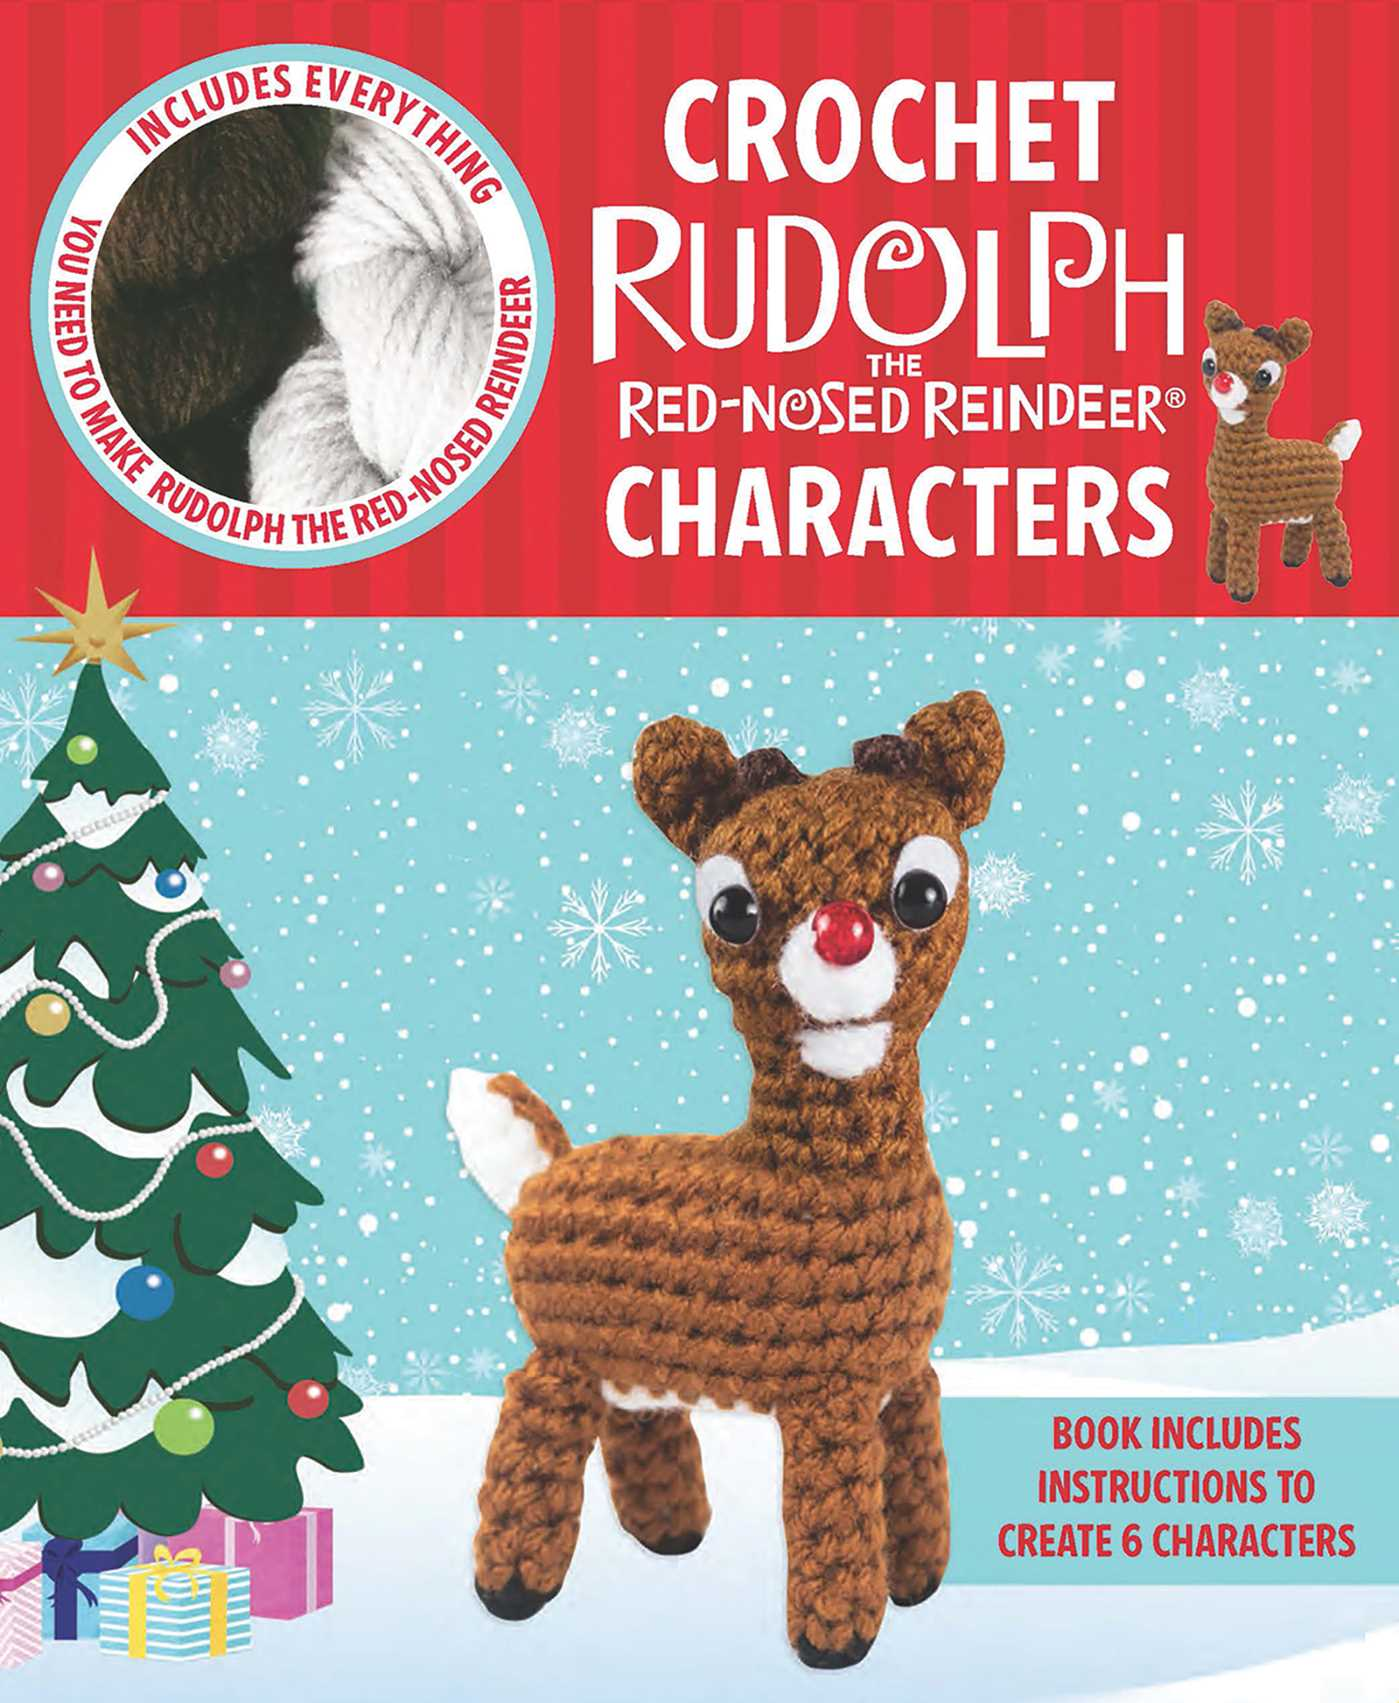 book cover image jpg crochet rudolph the red nosed reindeer characters